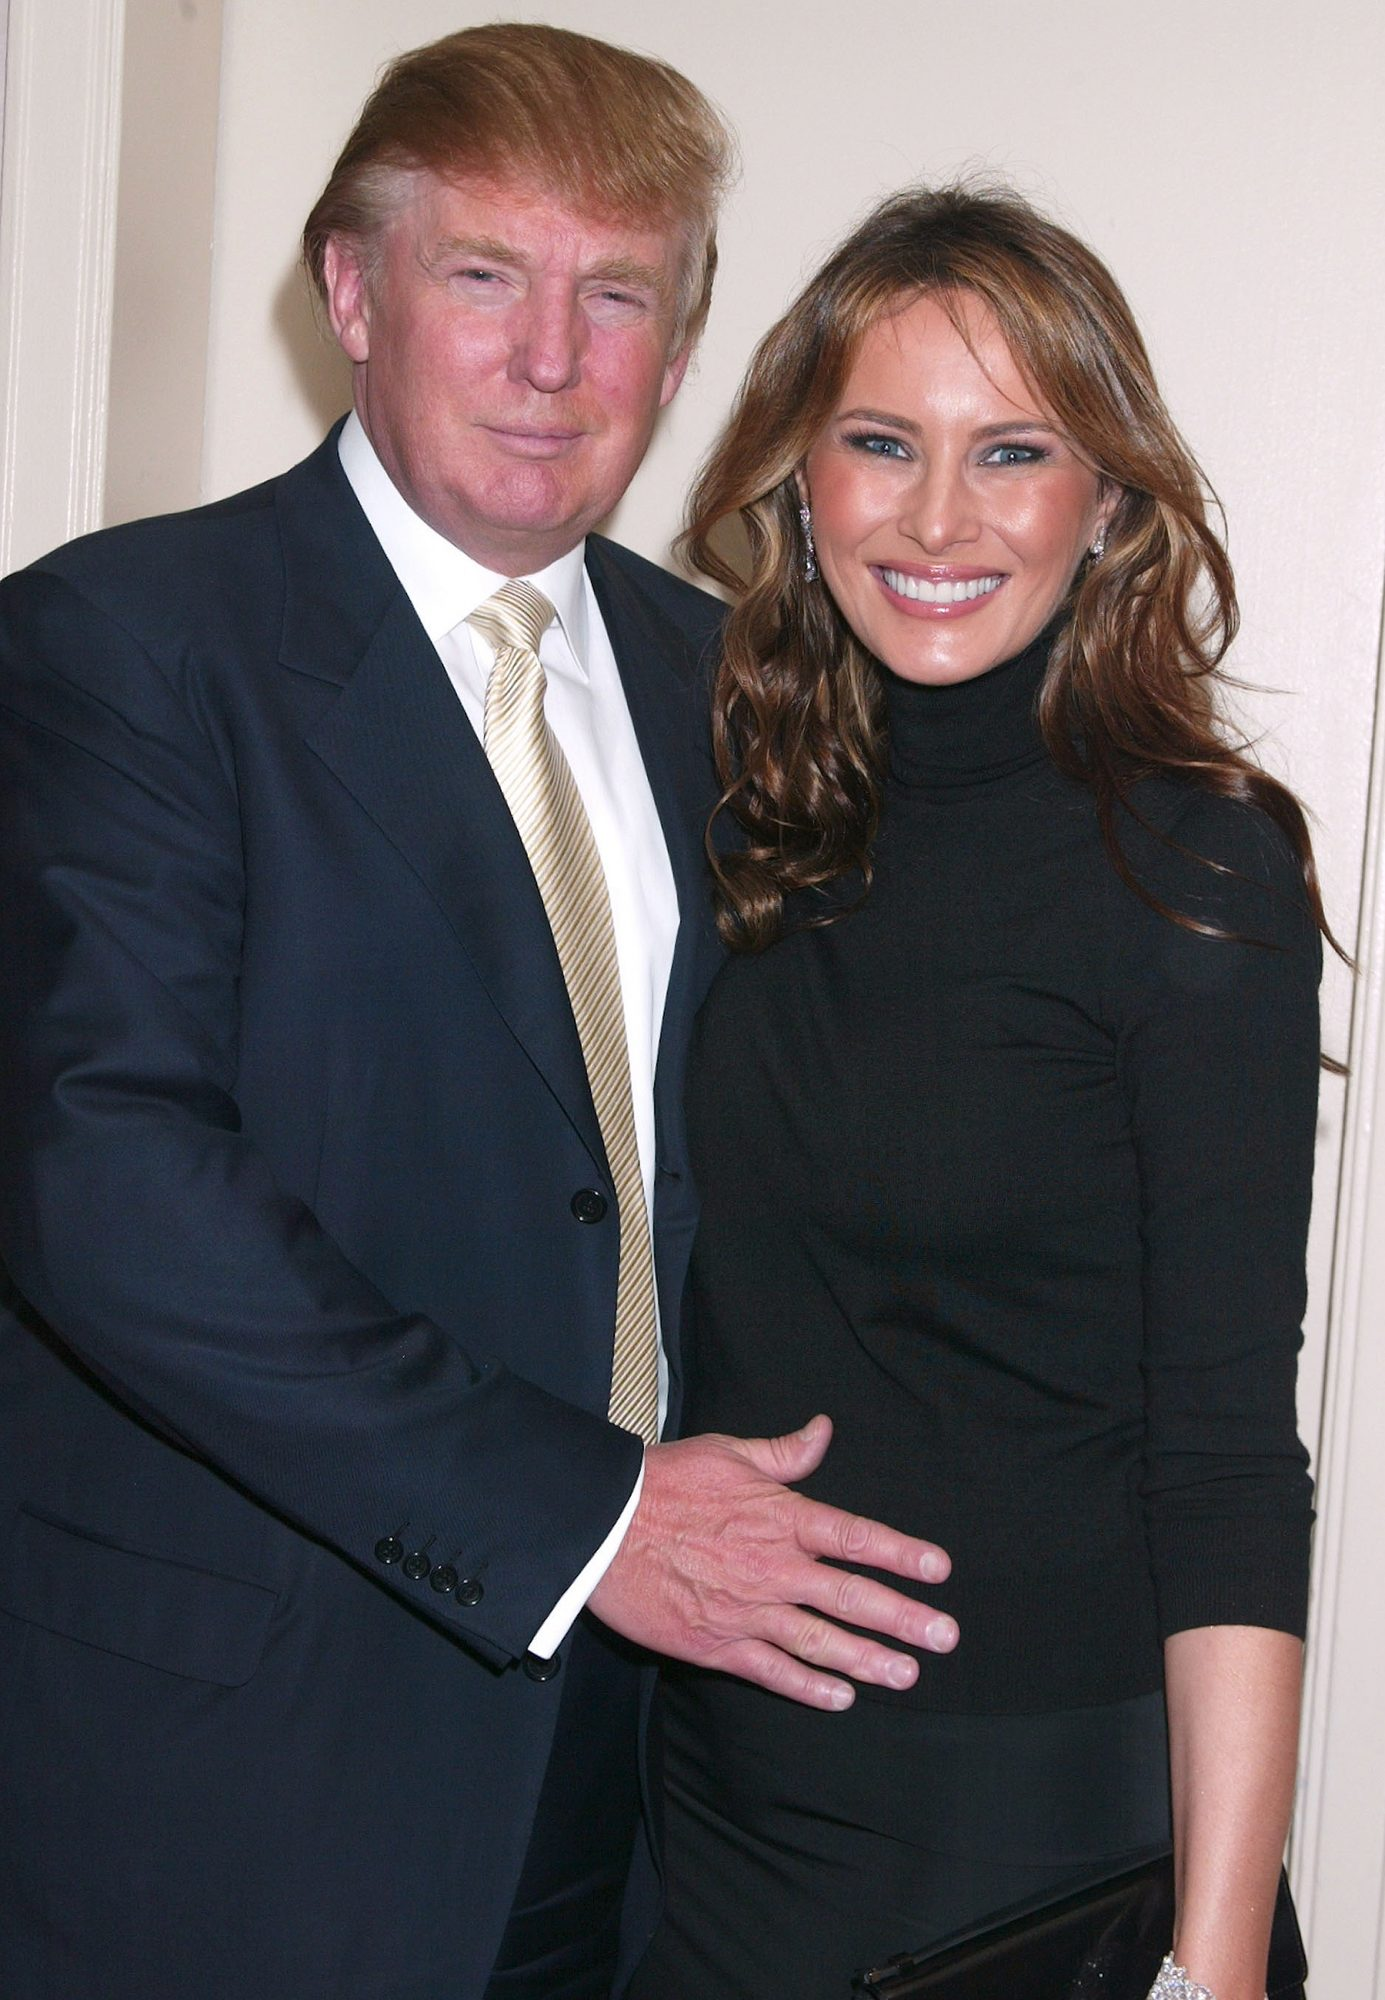 Donald Trump and Melania Knauss who is pregnant The 2005 IRTS Foundation Awards Waldorf-Astoria New York City, New York United States October 6, 2005 Photo by Gregory Pace/FilmMagic.com To license this image (6144249), contact FilmMagic: U.S. +1-212-812-4100 / U.K. +44-207-659-2813 / Australia +61-2-9006-1785 / Japan: +81-3-5464-7020 +1 212-202-7732 (fax) sales@filmmagic.com (e-mail) www.filmmagic.com (web site) waldorf-astoria contributing photographer united states call u.s. +1-212-812-4100 / u.k. +44-207-659-2813 / australia +61-2-9006-1785 / japan: +81-3-5464-7020 or e-mail sales@filmmagic